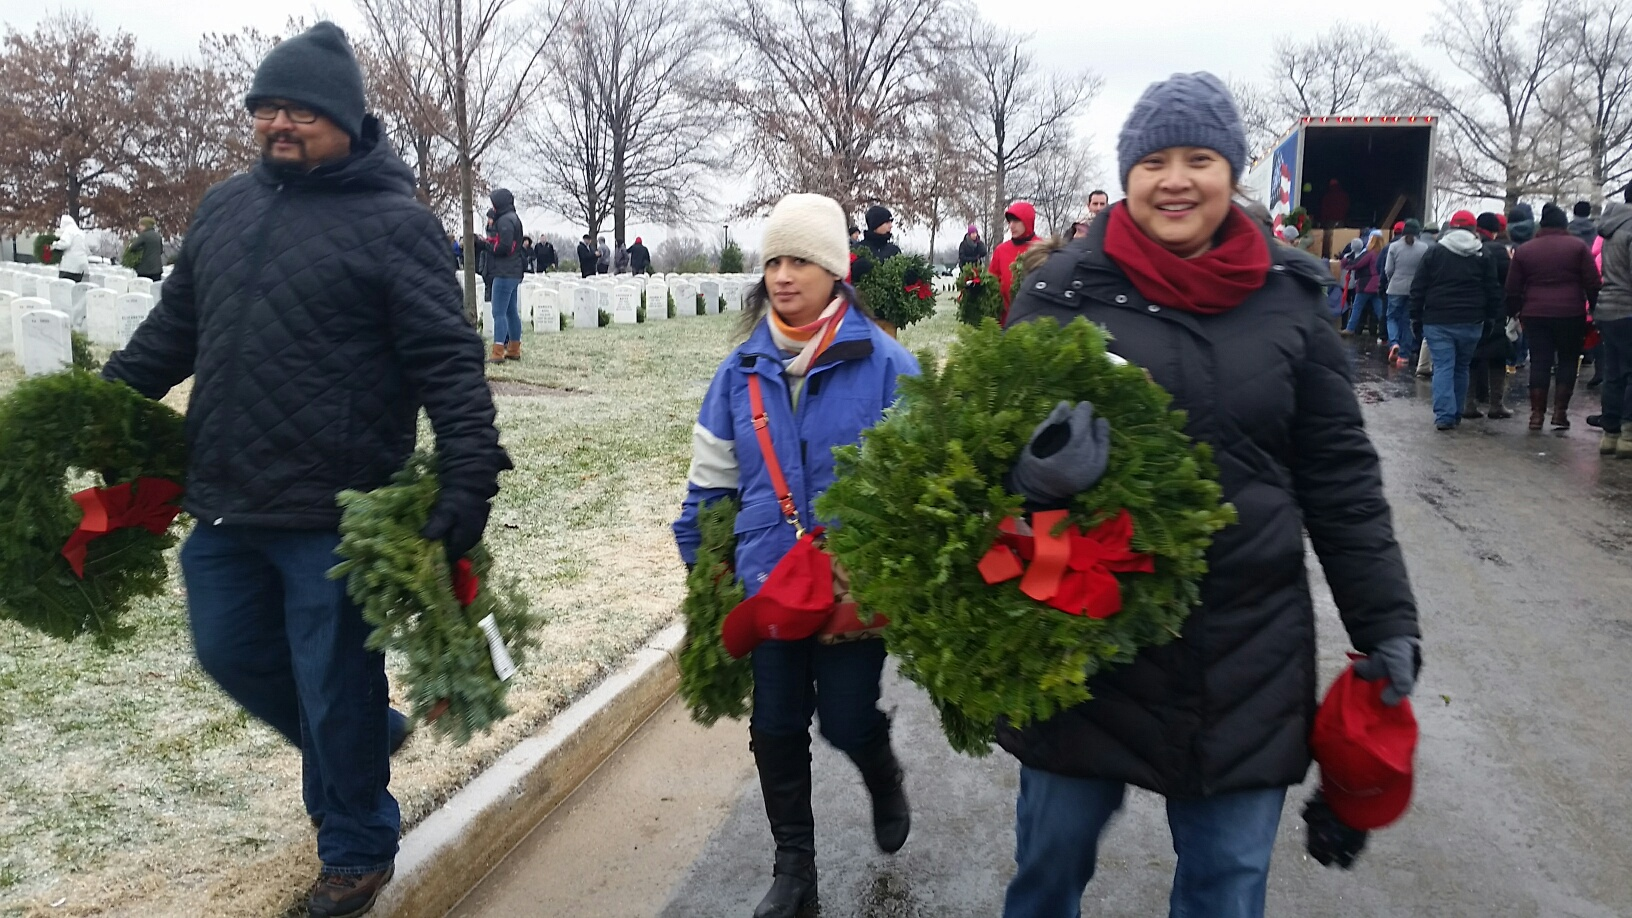 The opening ceremony of the Wreaths Across America ceremony had to be canceled Saturday morning due to freezing rain, but 44,000 volunteers still showed up to participate Saturday morning, Dec. 16, 2016 at Arlington National Cemetery. (WTOP/Kathy Stewart)